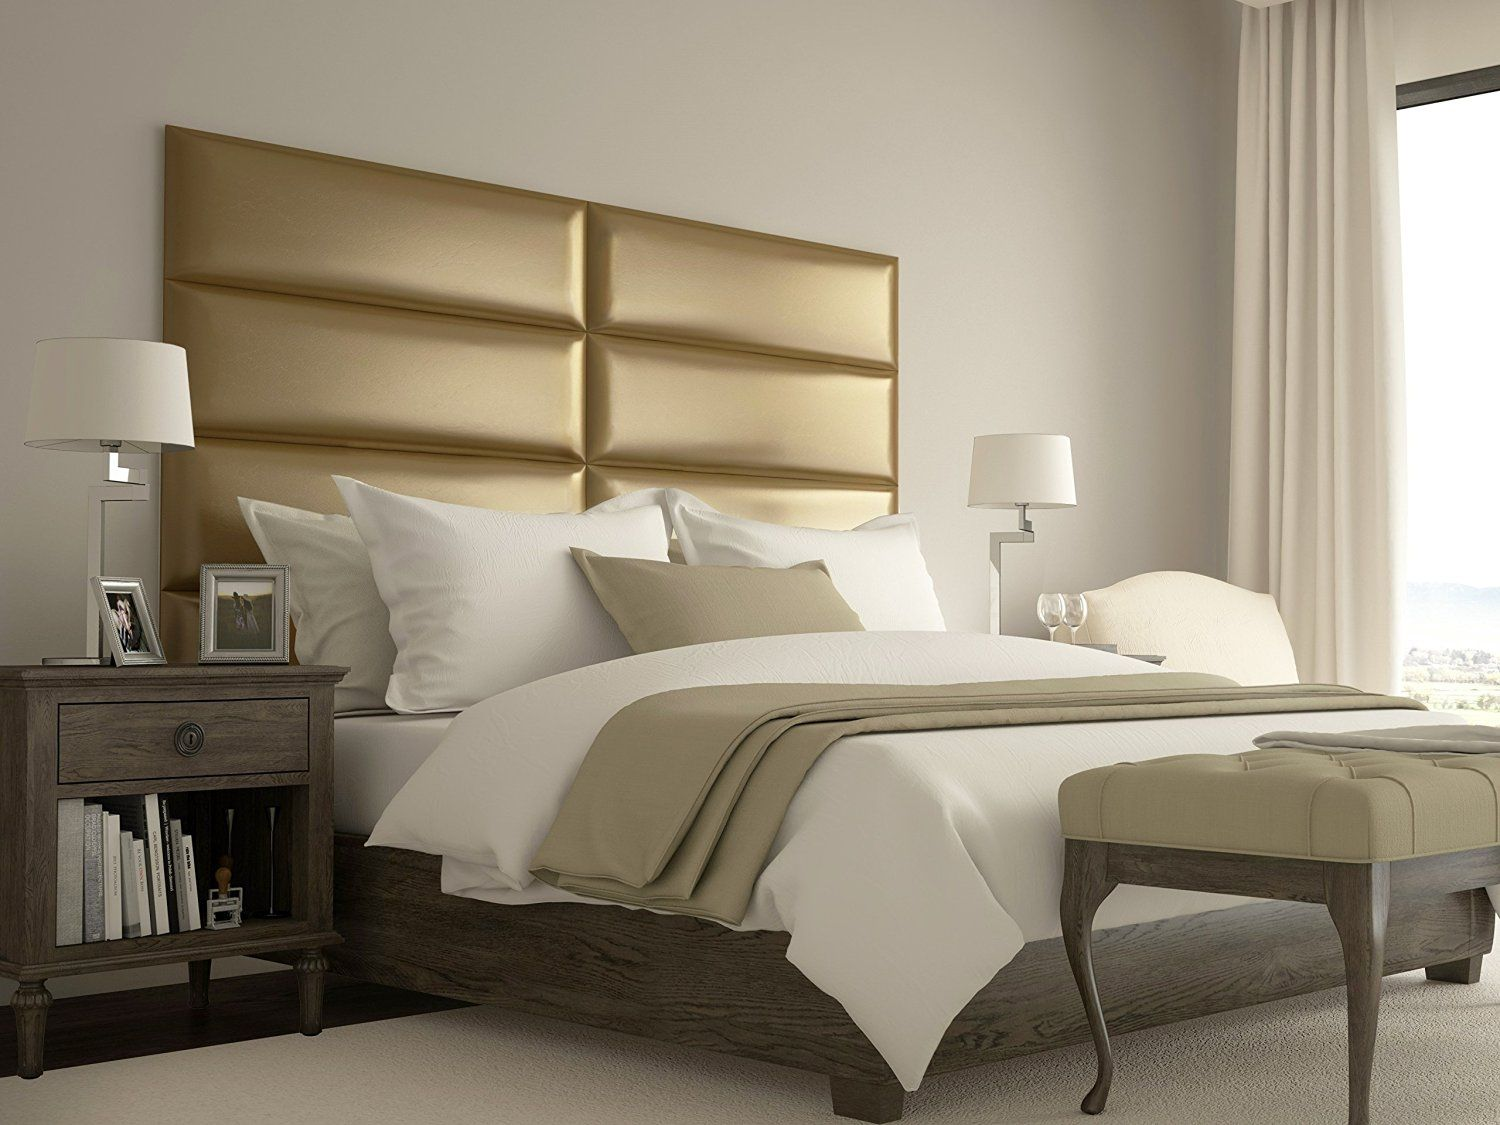 From Simple Classic Styles To Elegant Metal Gold Headboard Create Your Dream Bedroom Set Up With Luxurious Bedrooms Upholstered Wall Panels Upholstered Walls